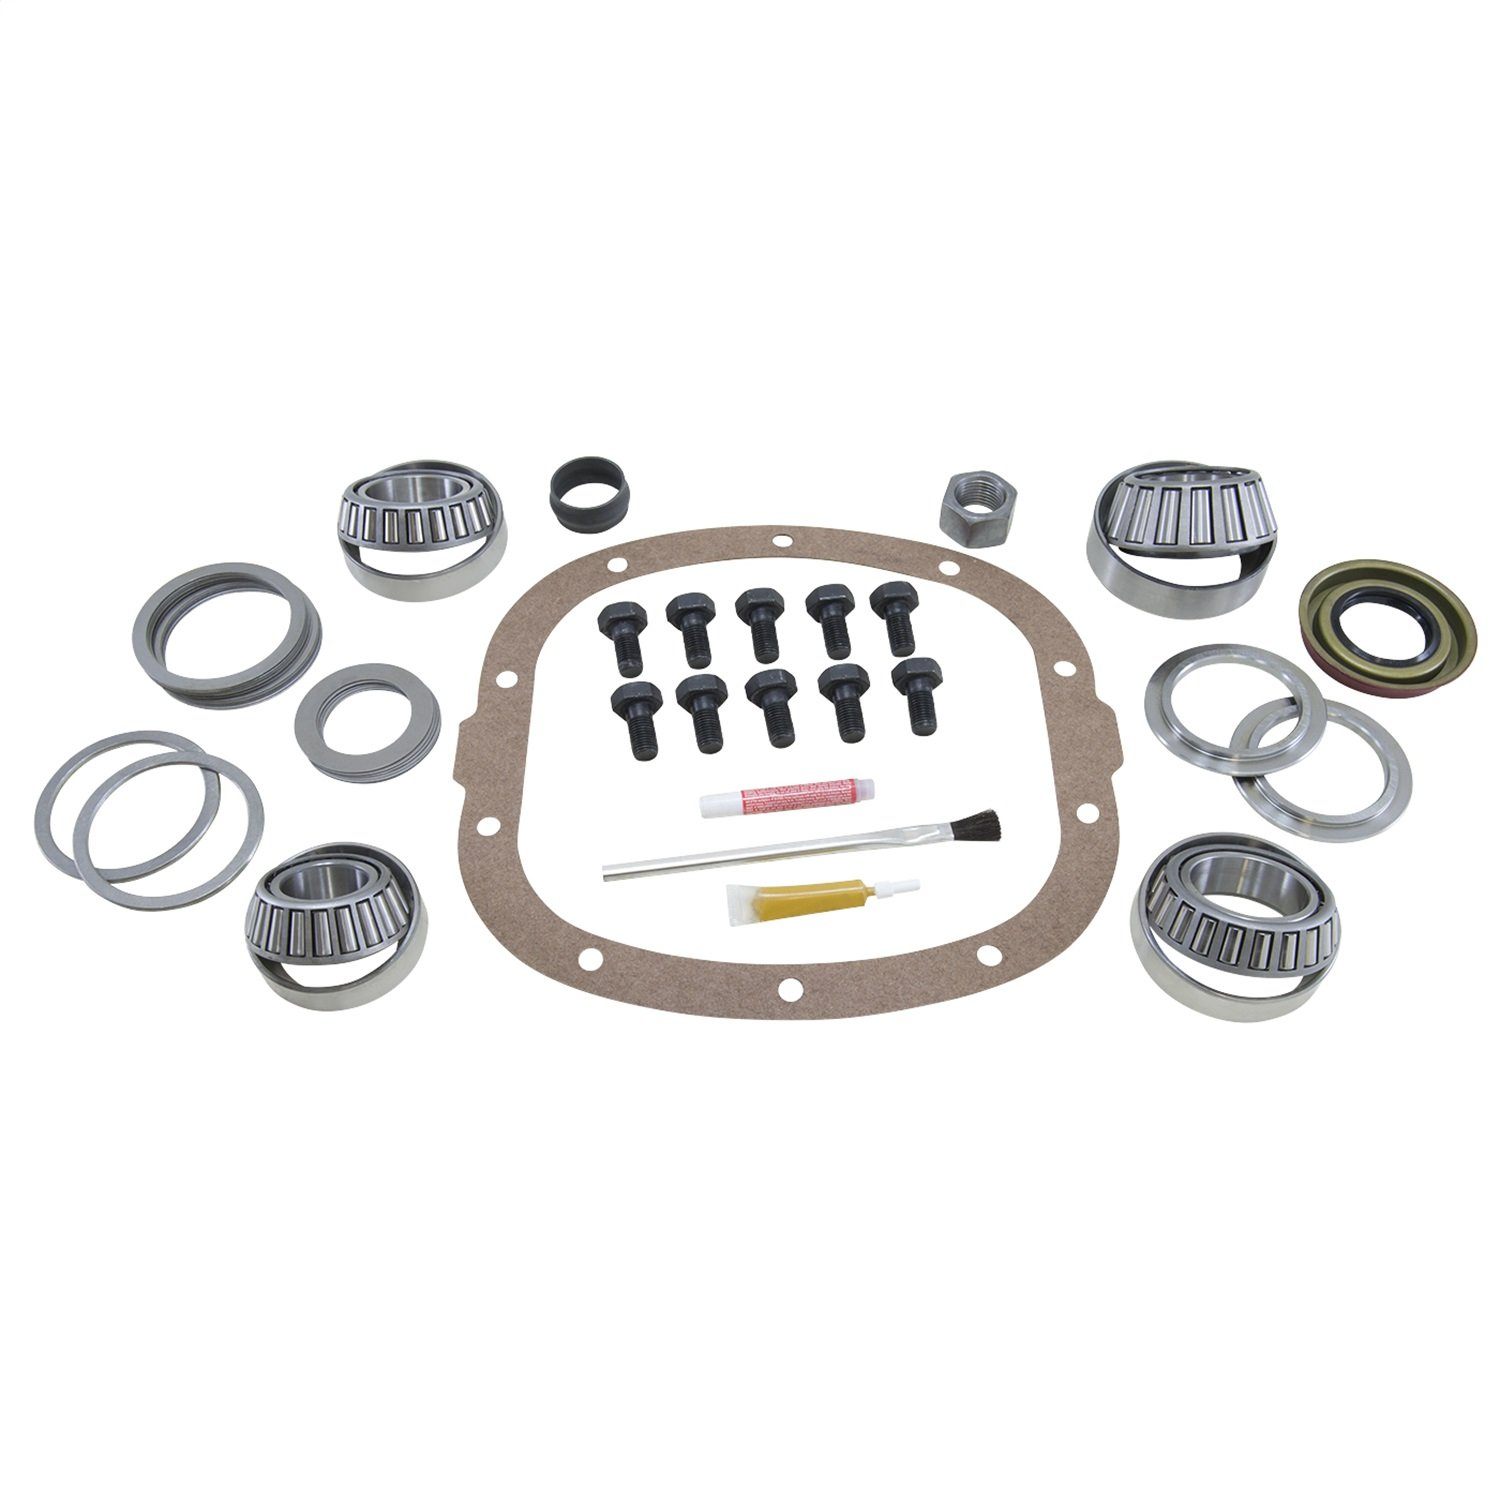 USA Standard Gear ZK GM7.5-B Master Overhaul Kit for GM 7.5''/7.625'' Differential